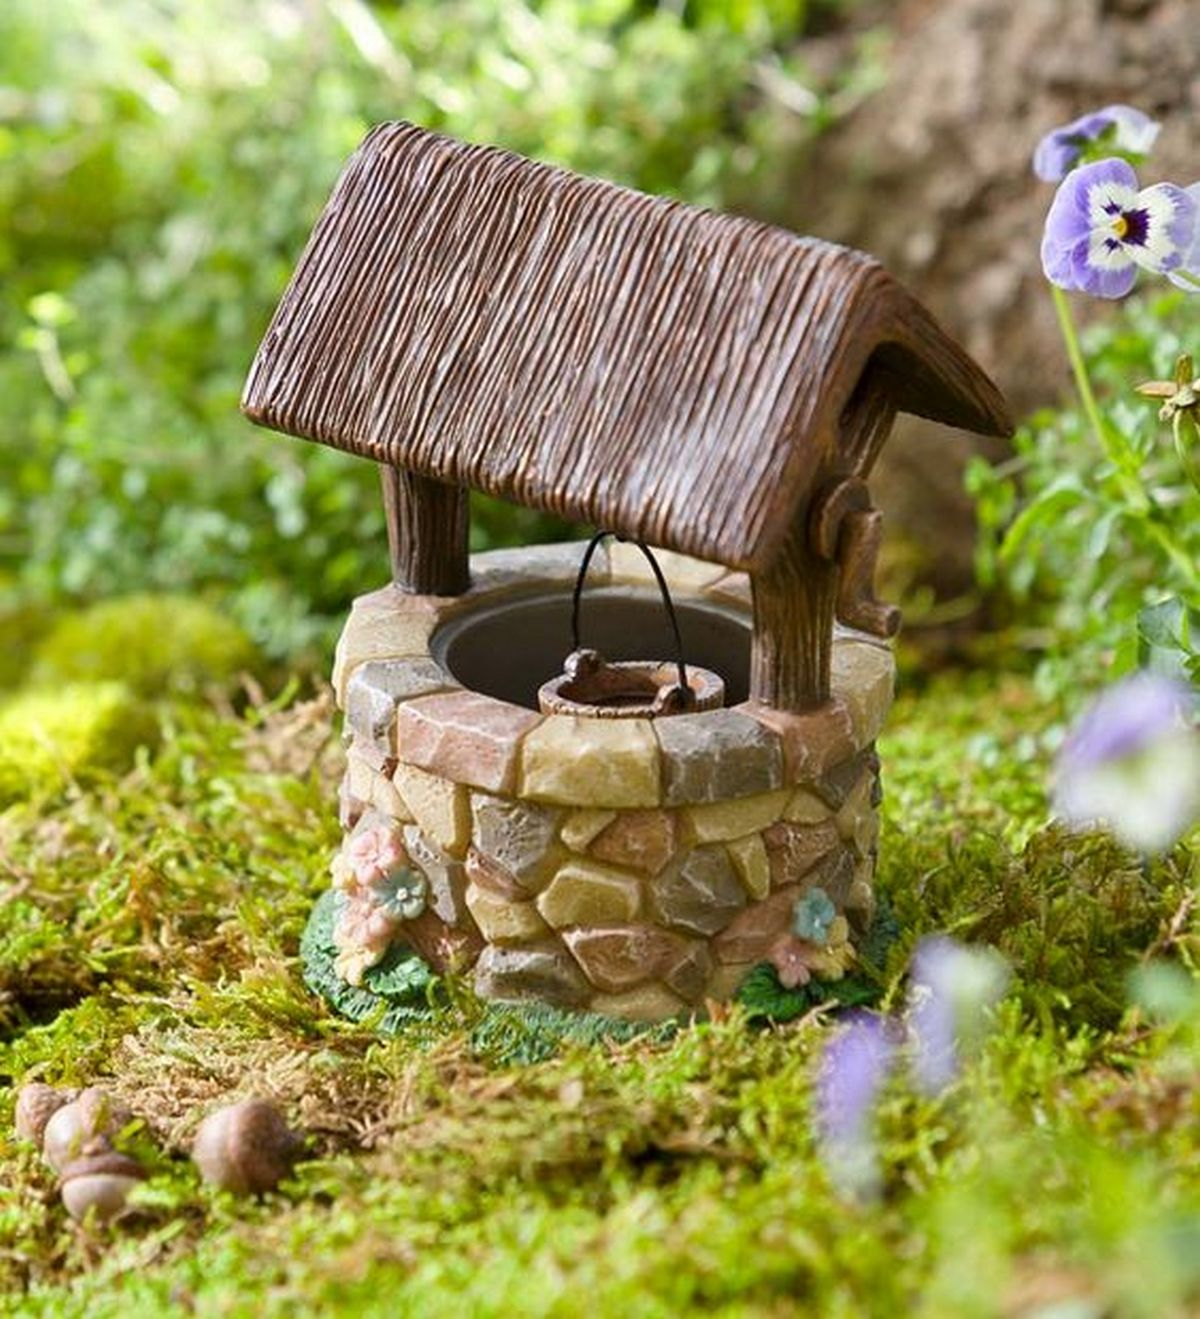 Fairy garden wells will be a charming addition to your fairy gardens.